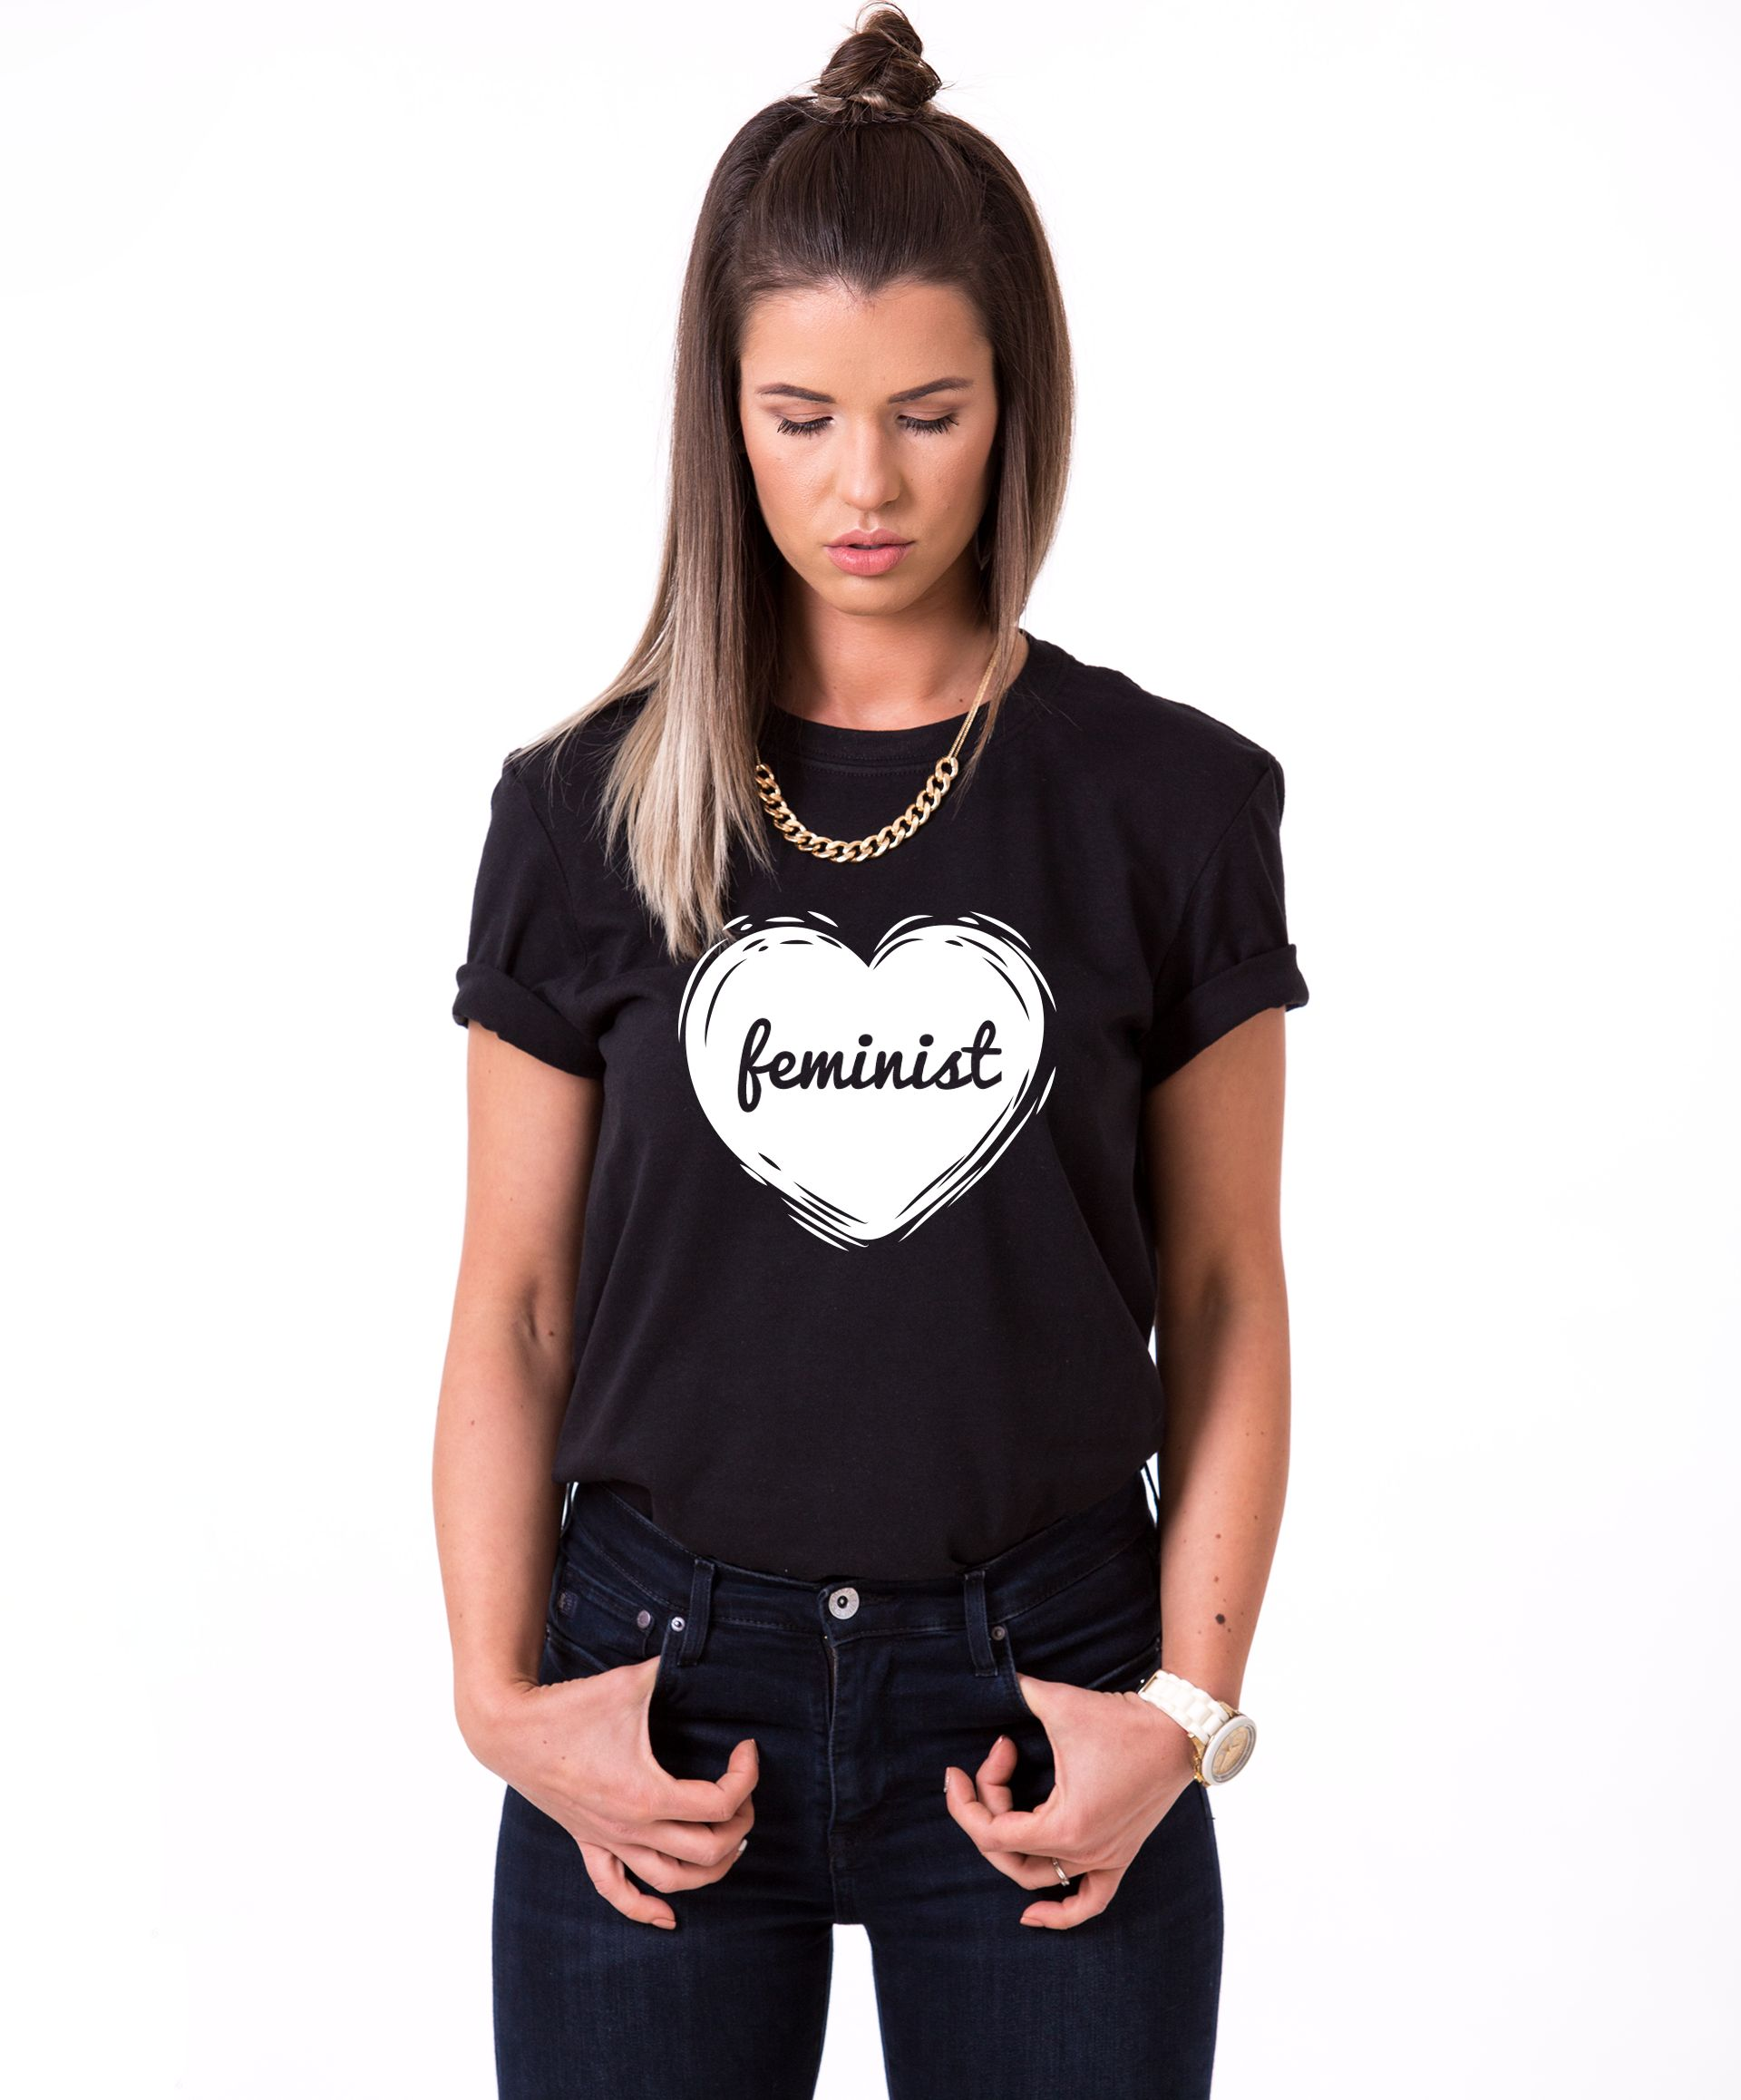 Feminist Shirt Feminism Heart Shirt Womans Rights Shirt